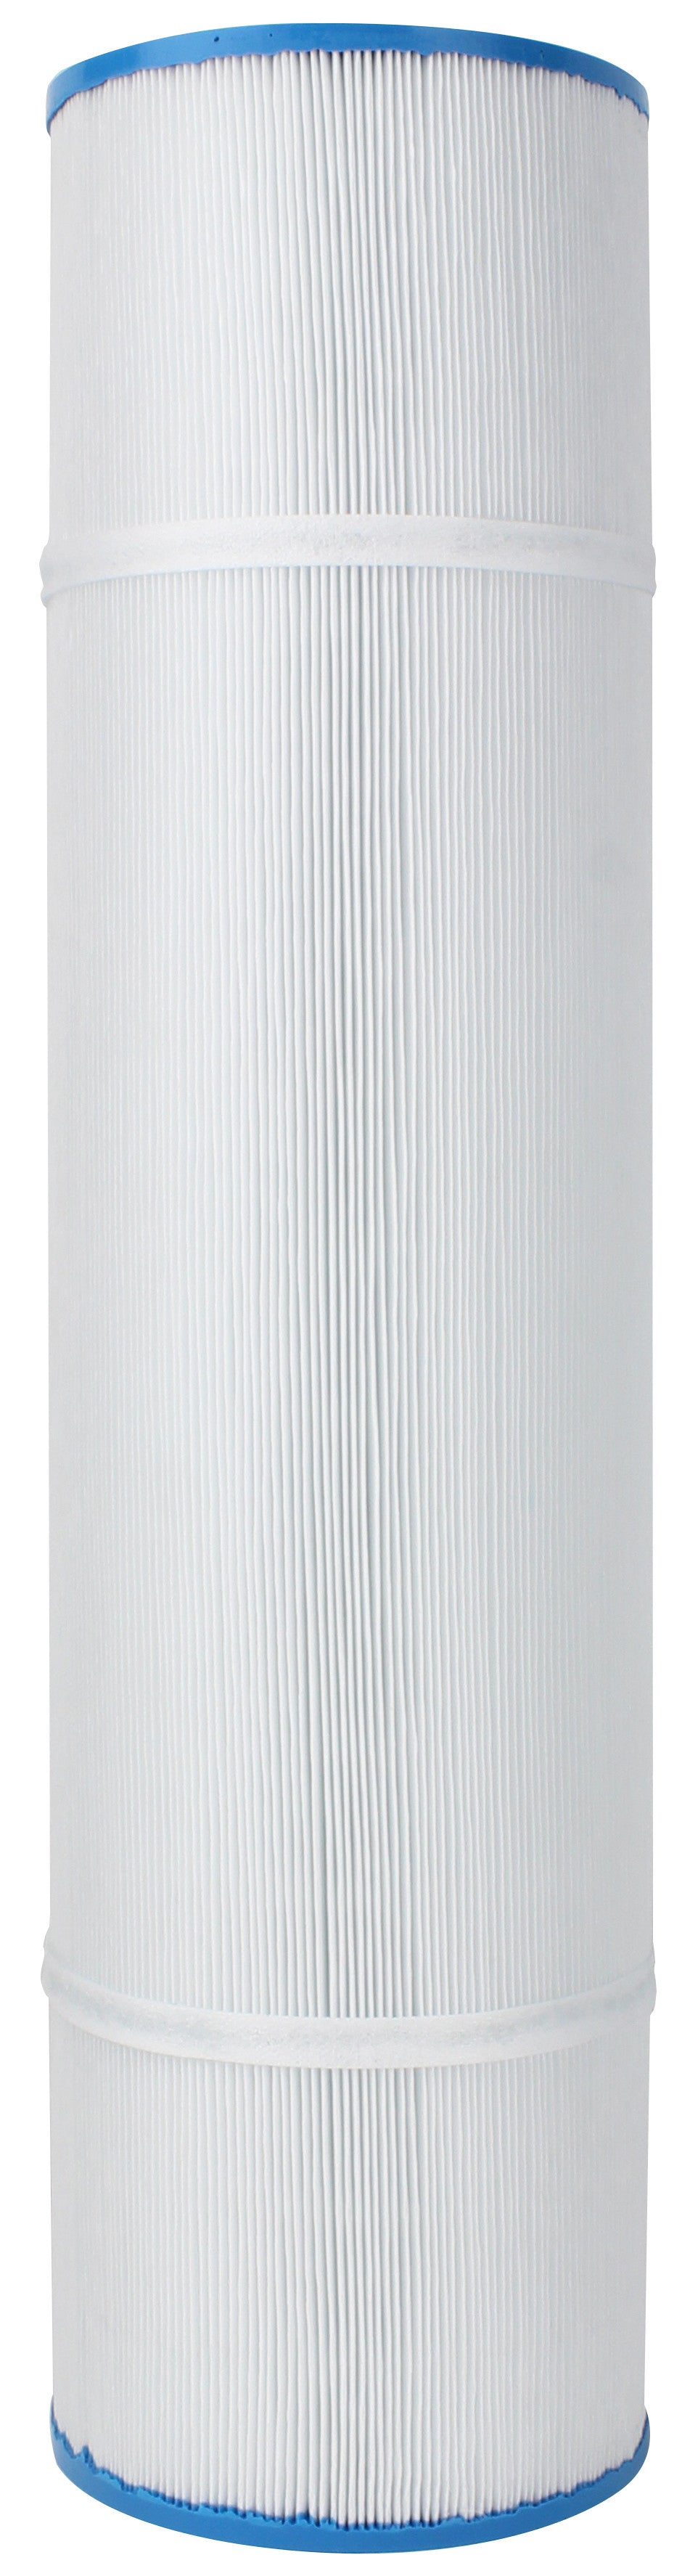 Replaces Unicel C-4975, Pleatco PRB75 • Pool & Spa Filter Cartridge-Filter Cartridge-FilterDeal.com